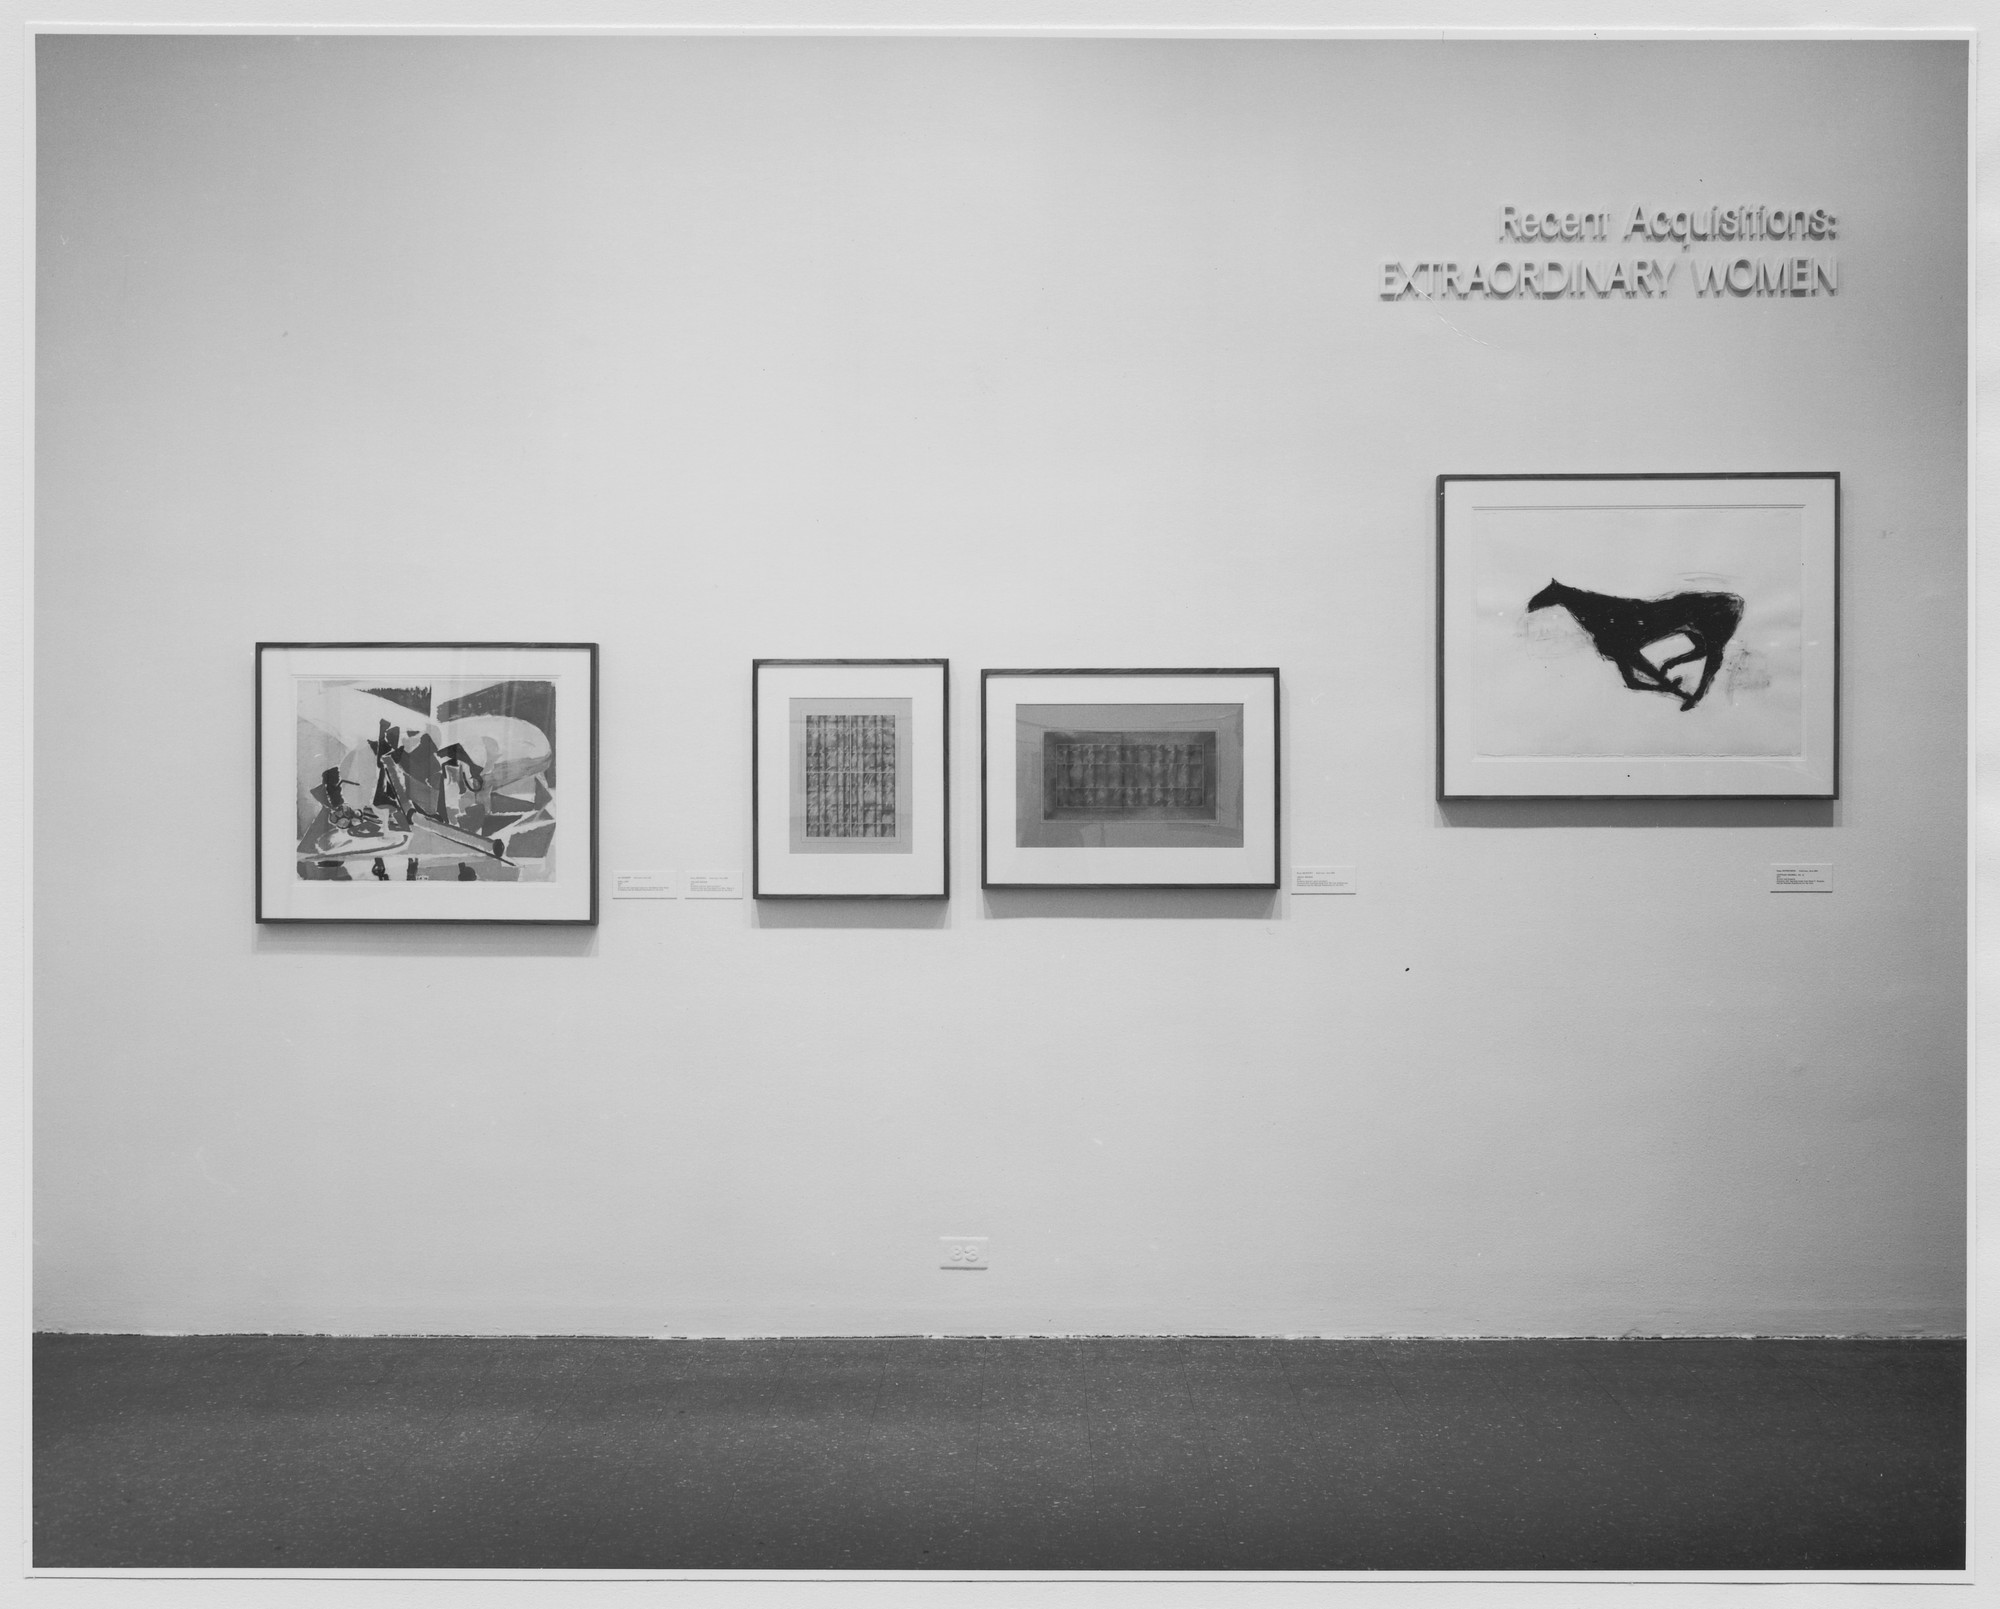 "Installation view of the exhibition, ""Extraordinary Women."" July 22, 1977–September 20, 1977. Photographic Archive. The Museum of Modern Art Archives, New York. IN1180.1. Photograph by Katherine Keller."